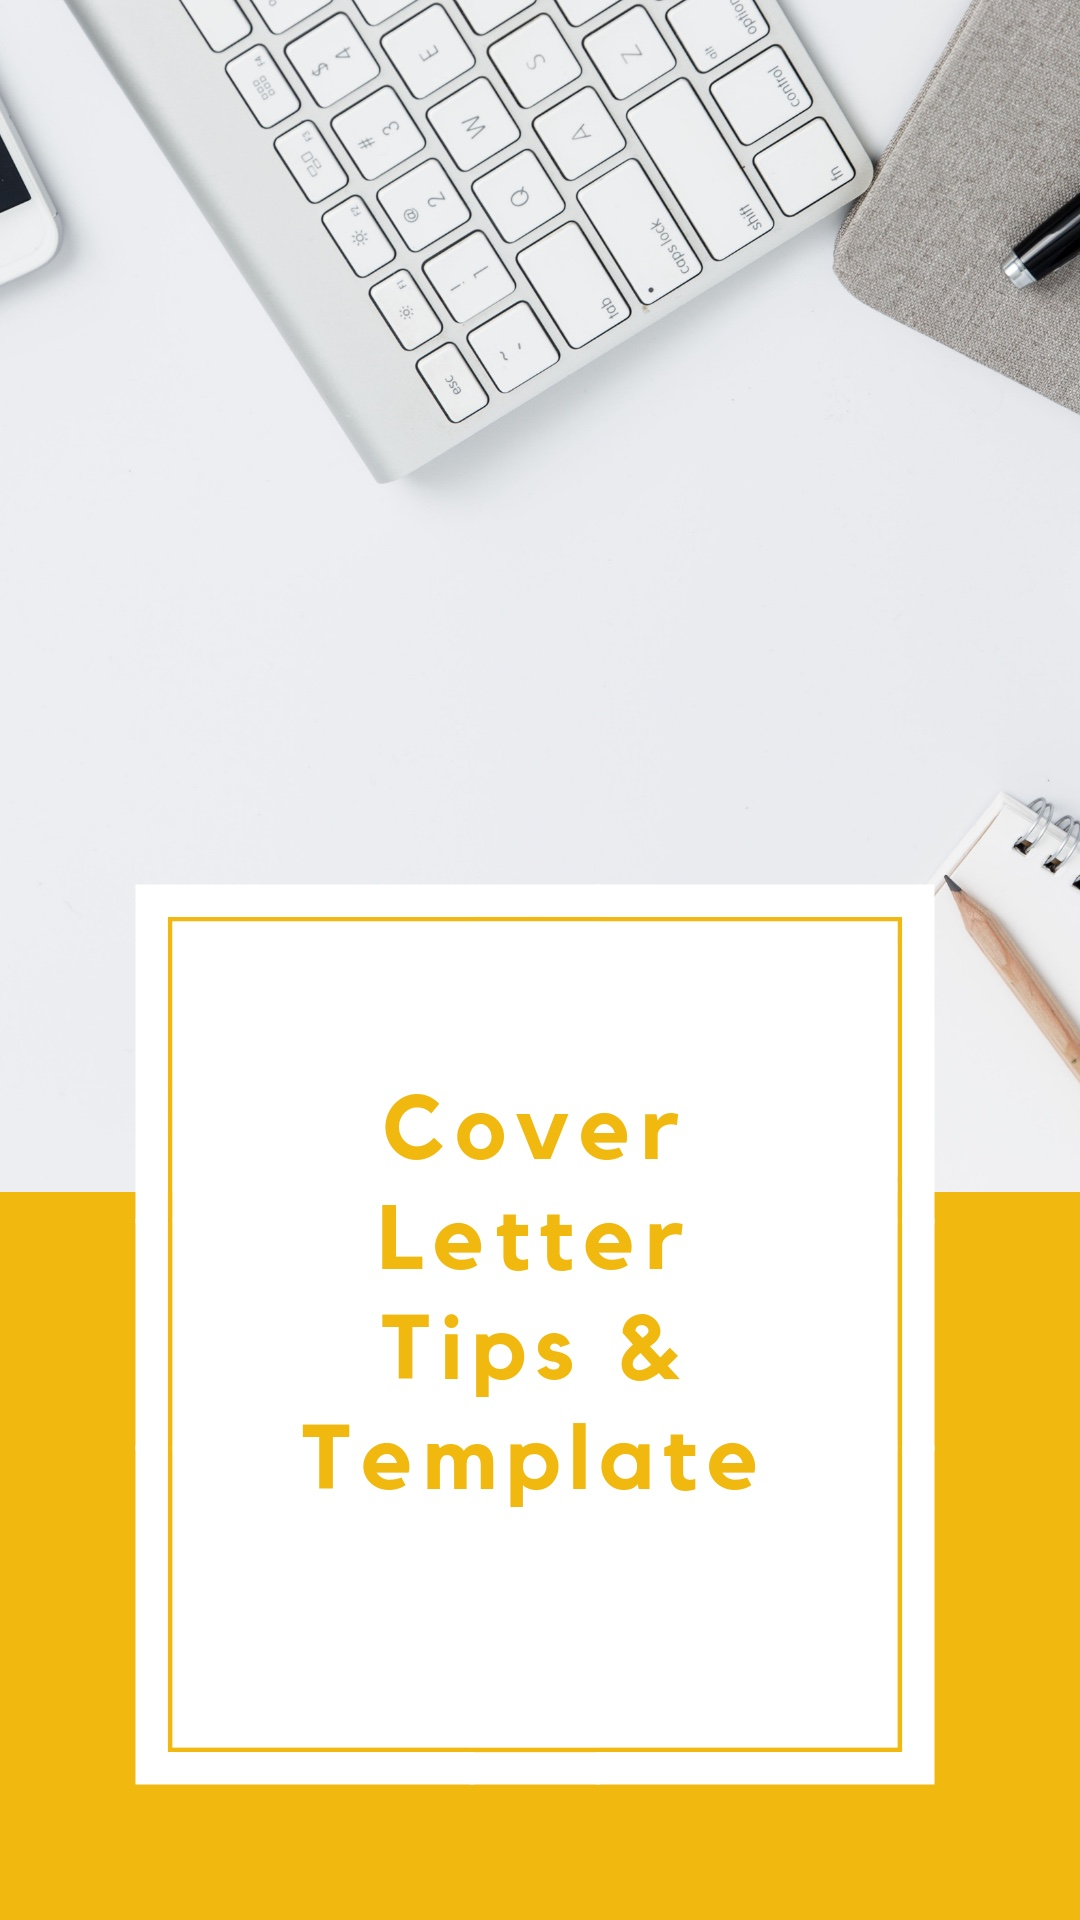 coverletterwritingjpeg